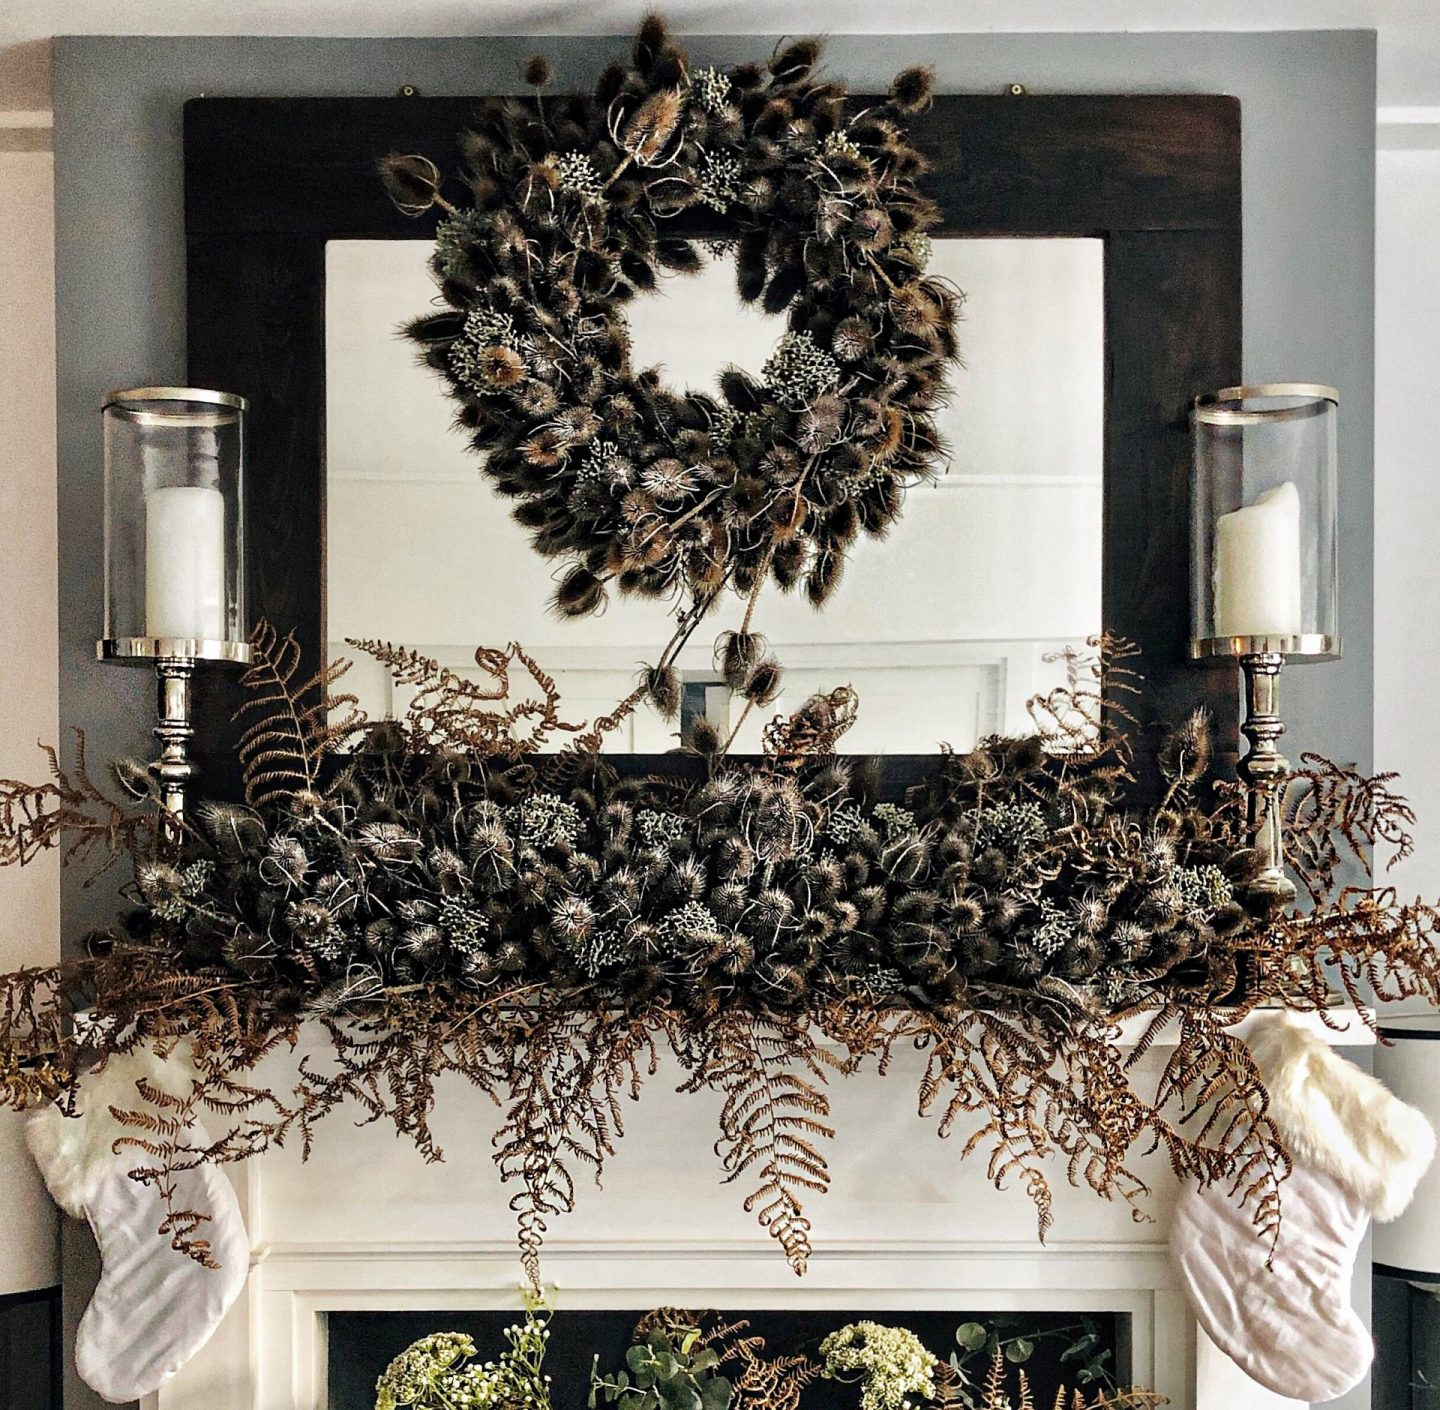 Christmas teasel wreath and mantle made by Jp Clark of jpslifeandloves.com